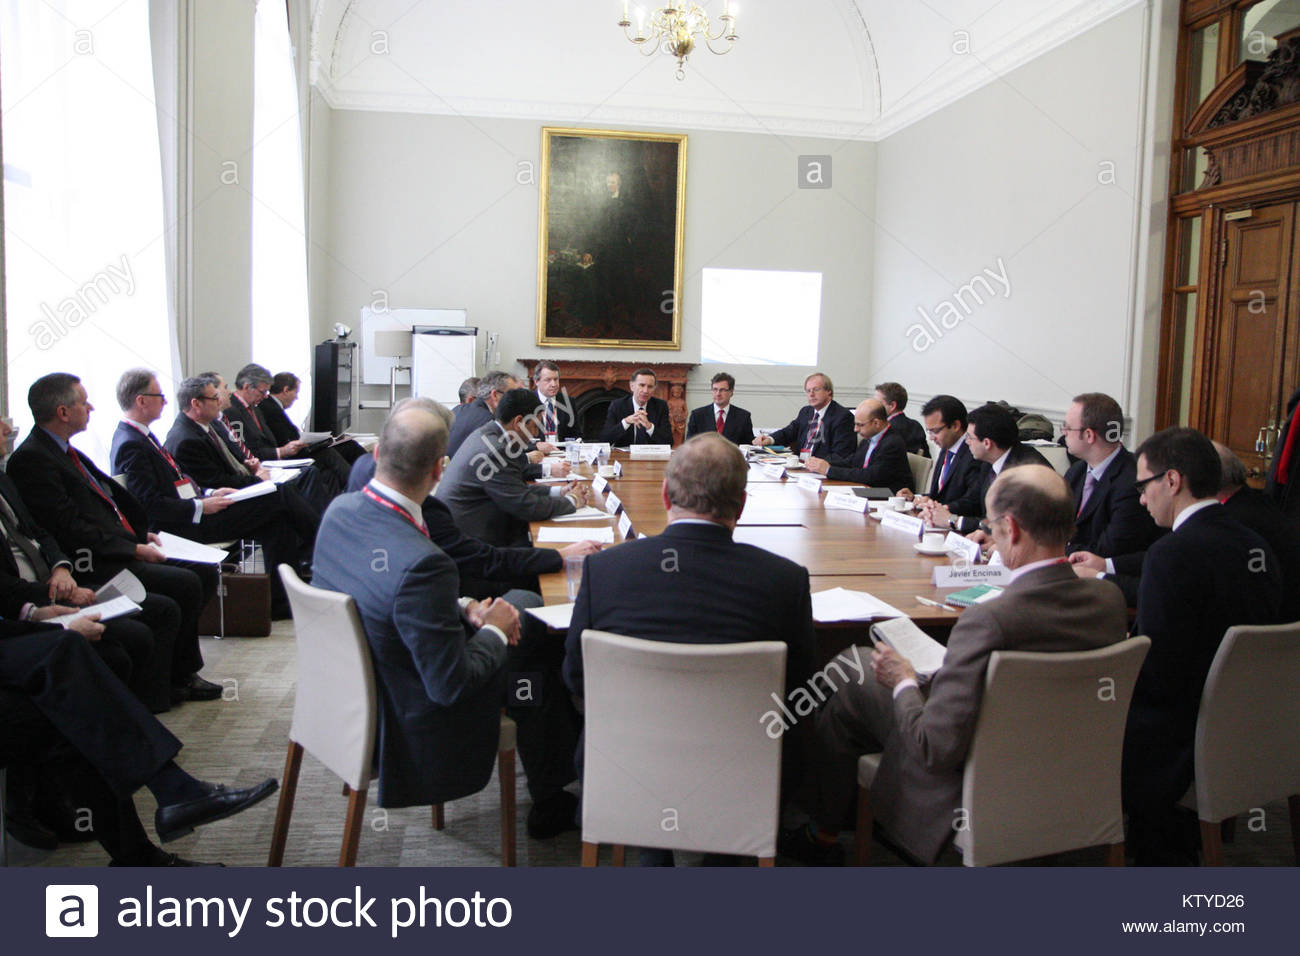 Colombian business roundtable event (8452652617) - Stock Image